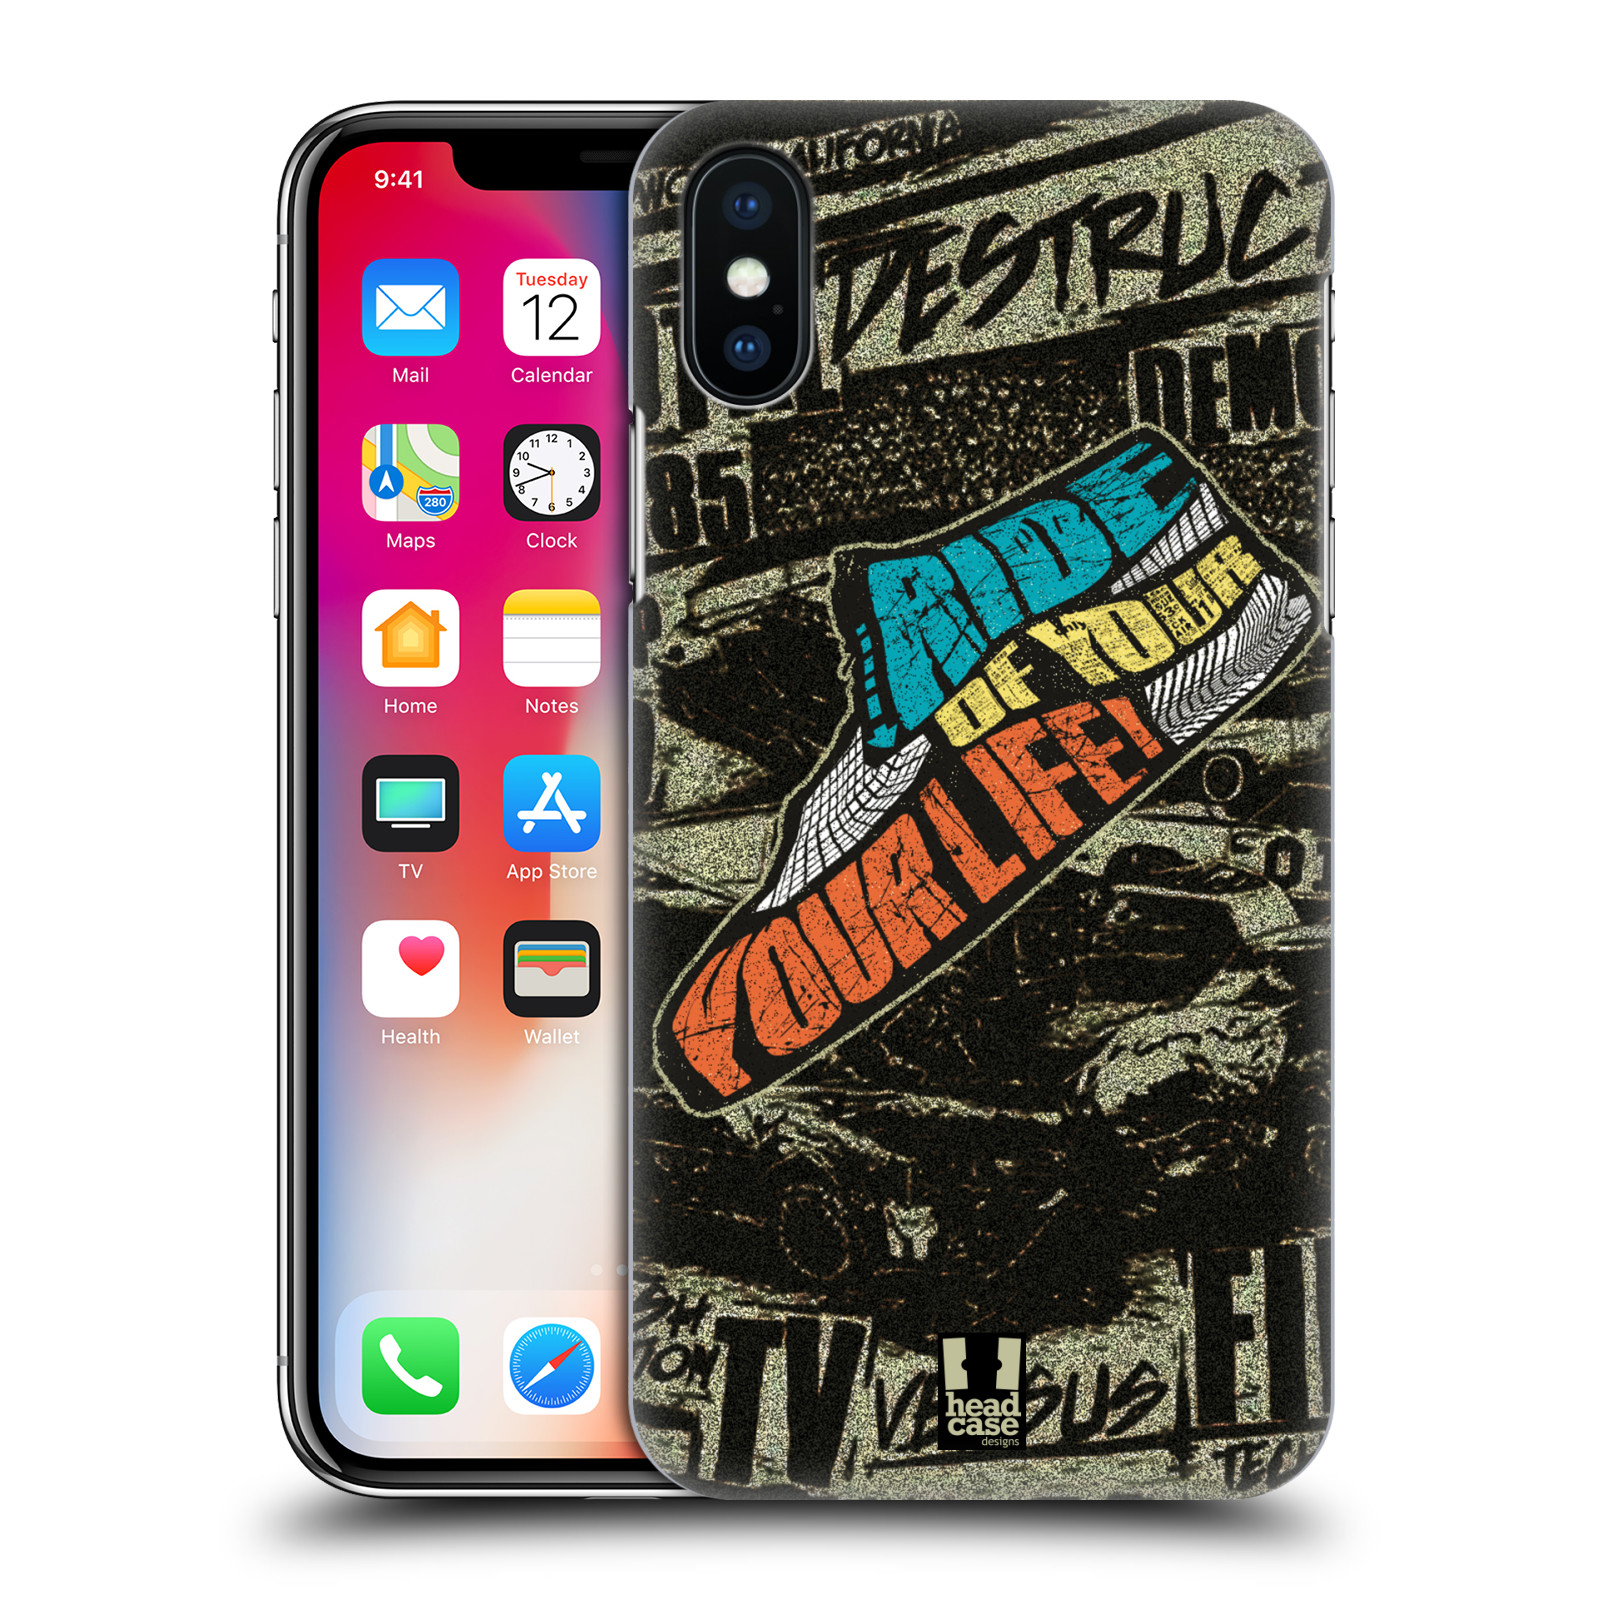 HEAD-CASE-DESIGNS-LIVE-BMX-ETUI-COQUE-D-039-ARRIERE-RIGIDE-POUR-APPLE-iPHONE-X